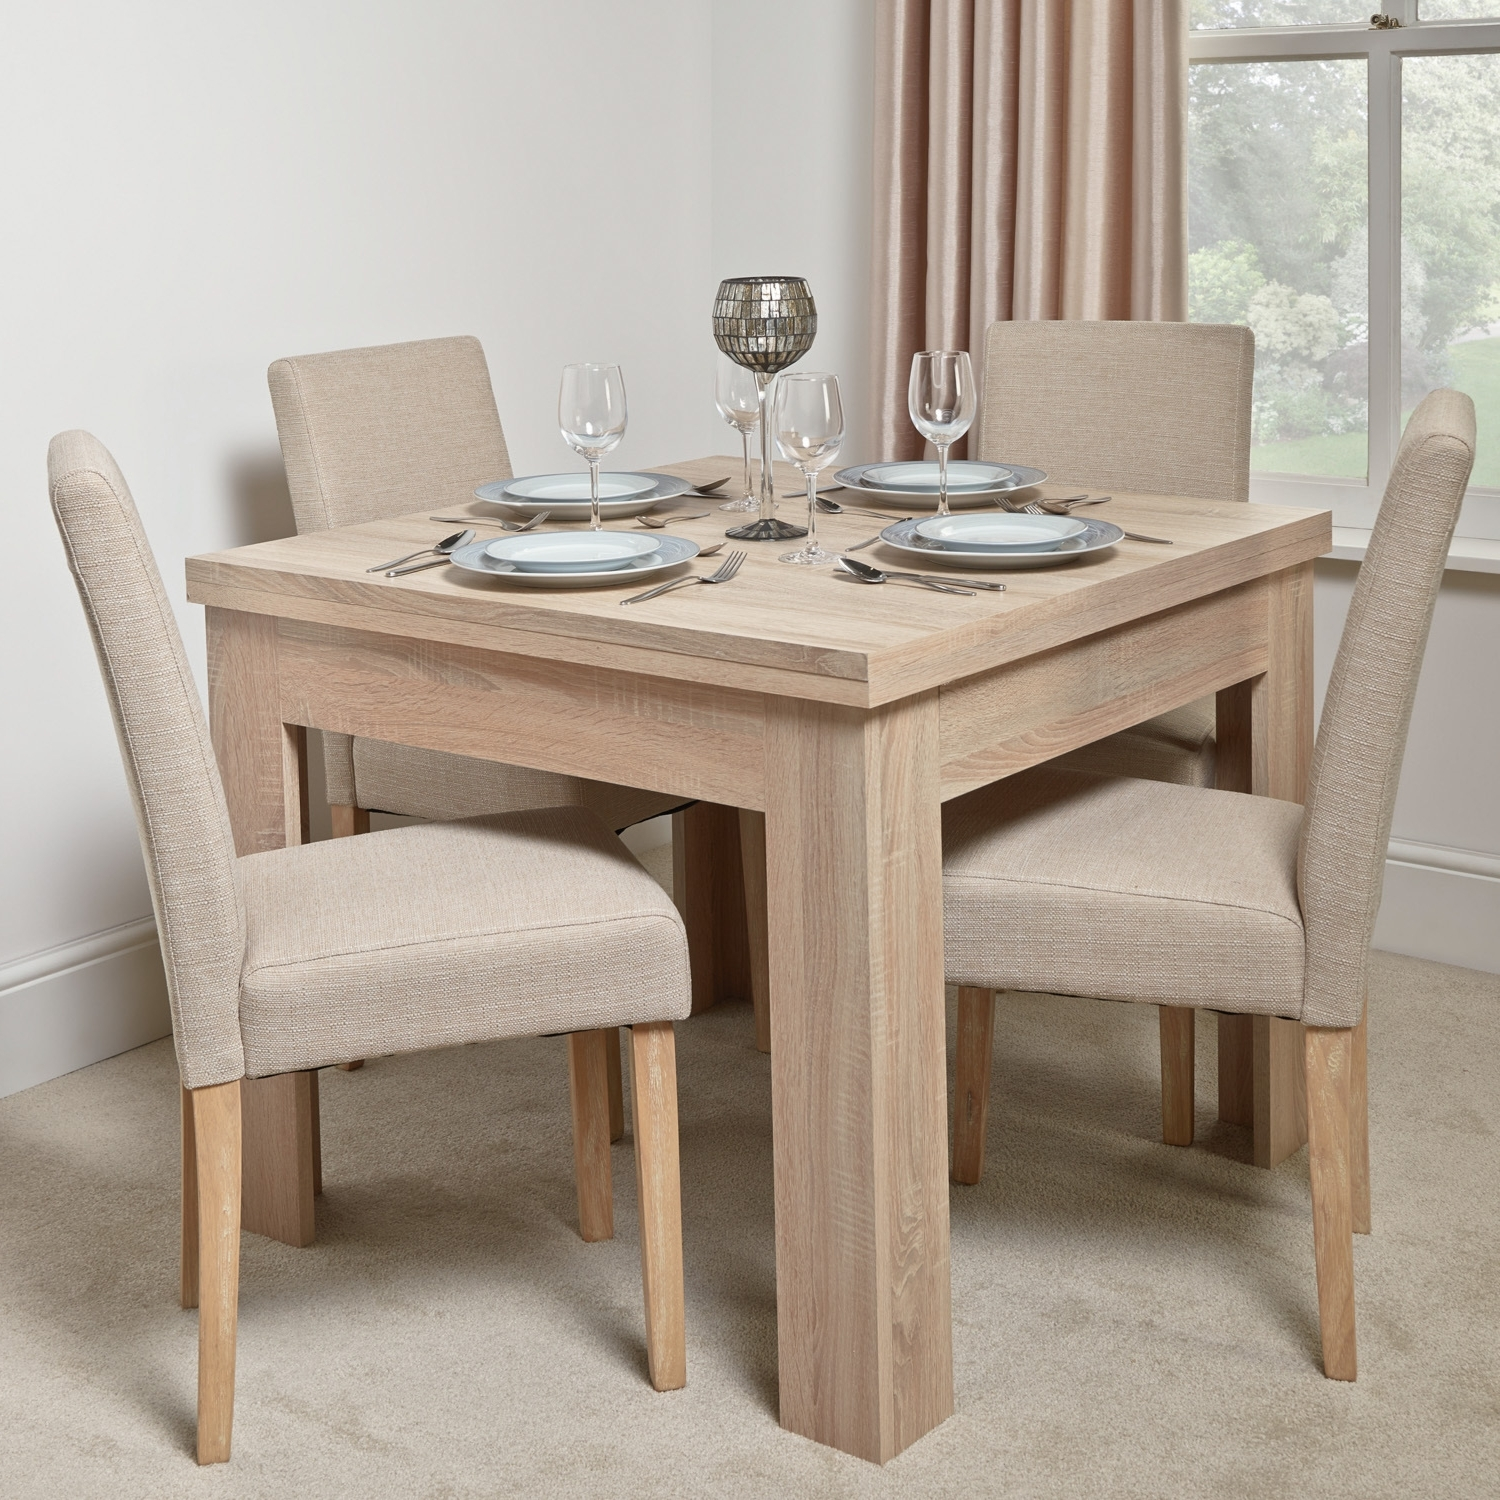 Calpe Flip Extending Dining Table Regarding Favorite Extendable Dining Tables And 6 Chairs (View 10 of 25)